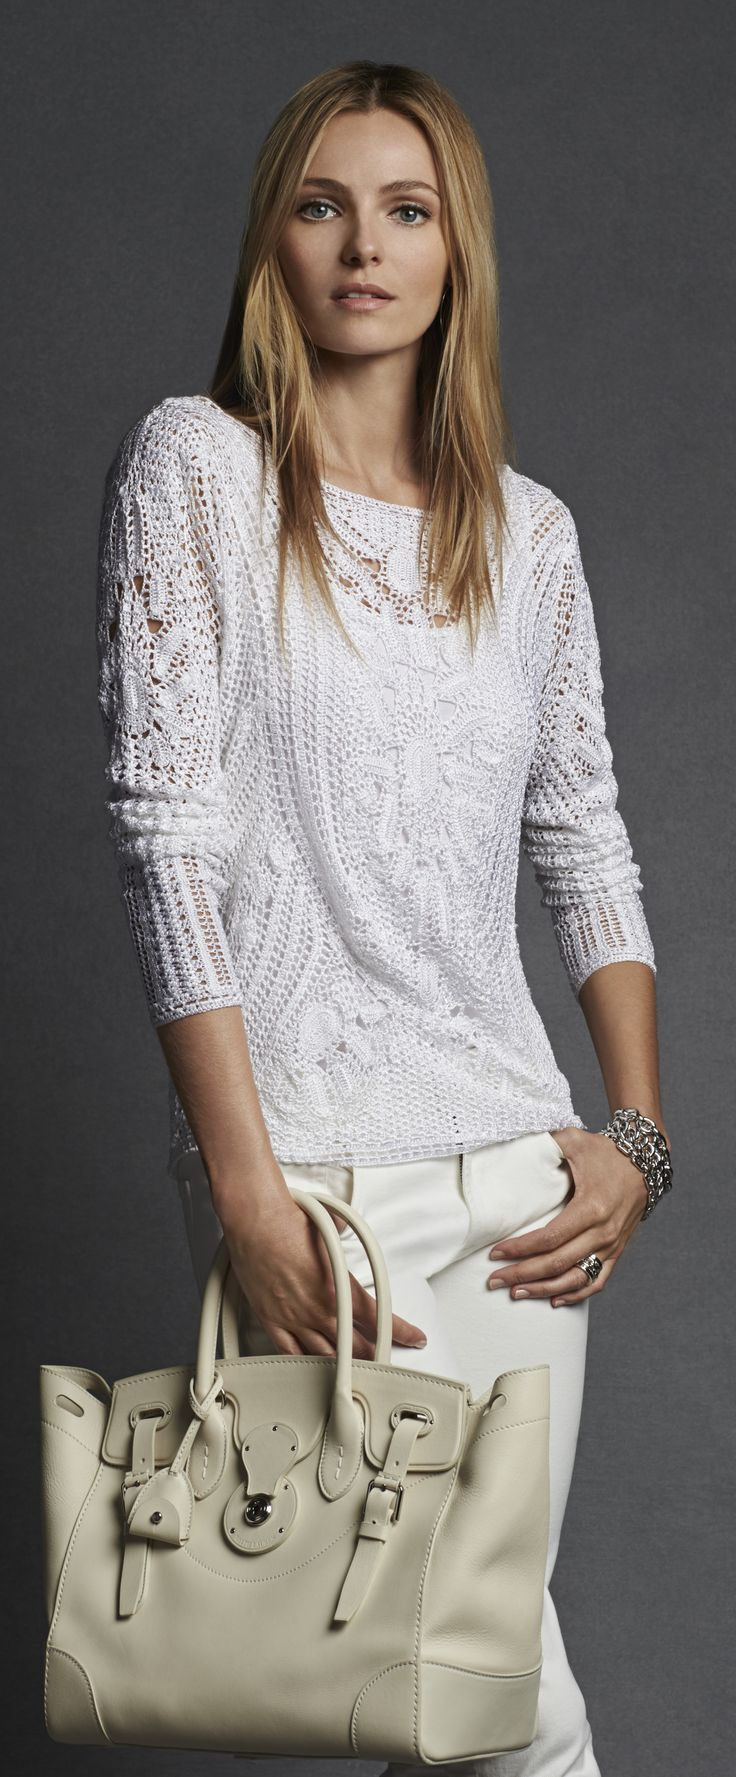 This ultra-soft white Ralph Lauren sweater is hand-crocheted and features a feminine bateau neckline